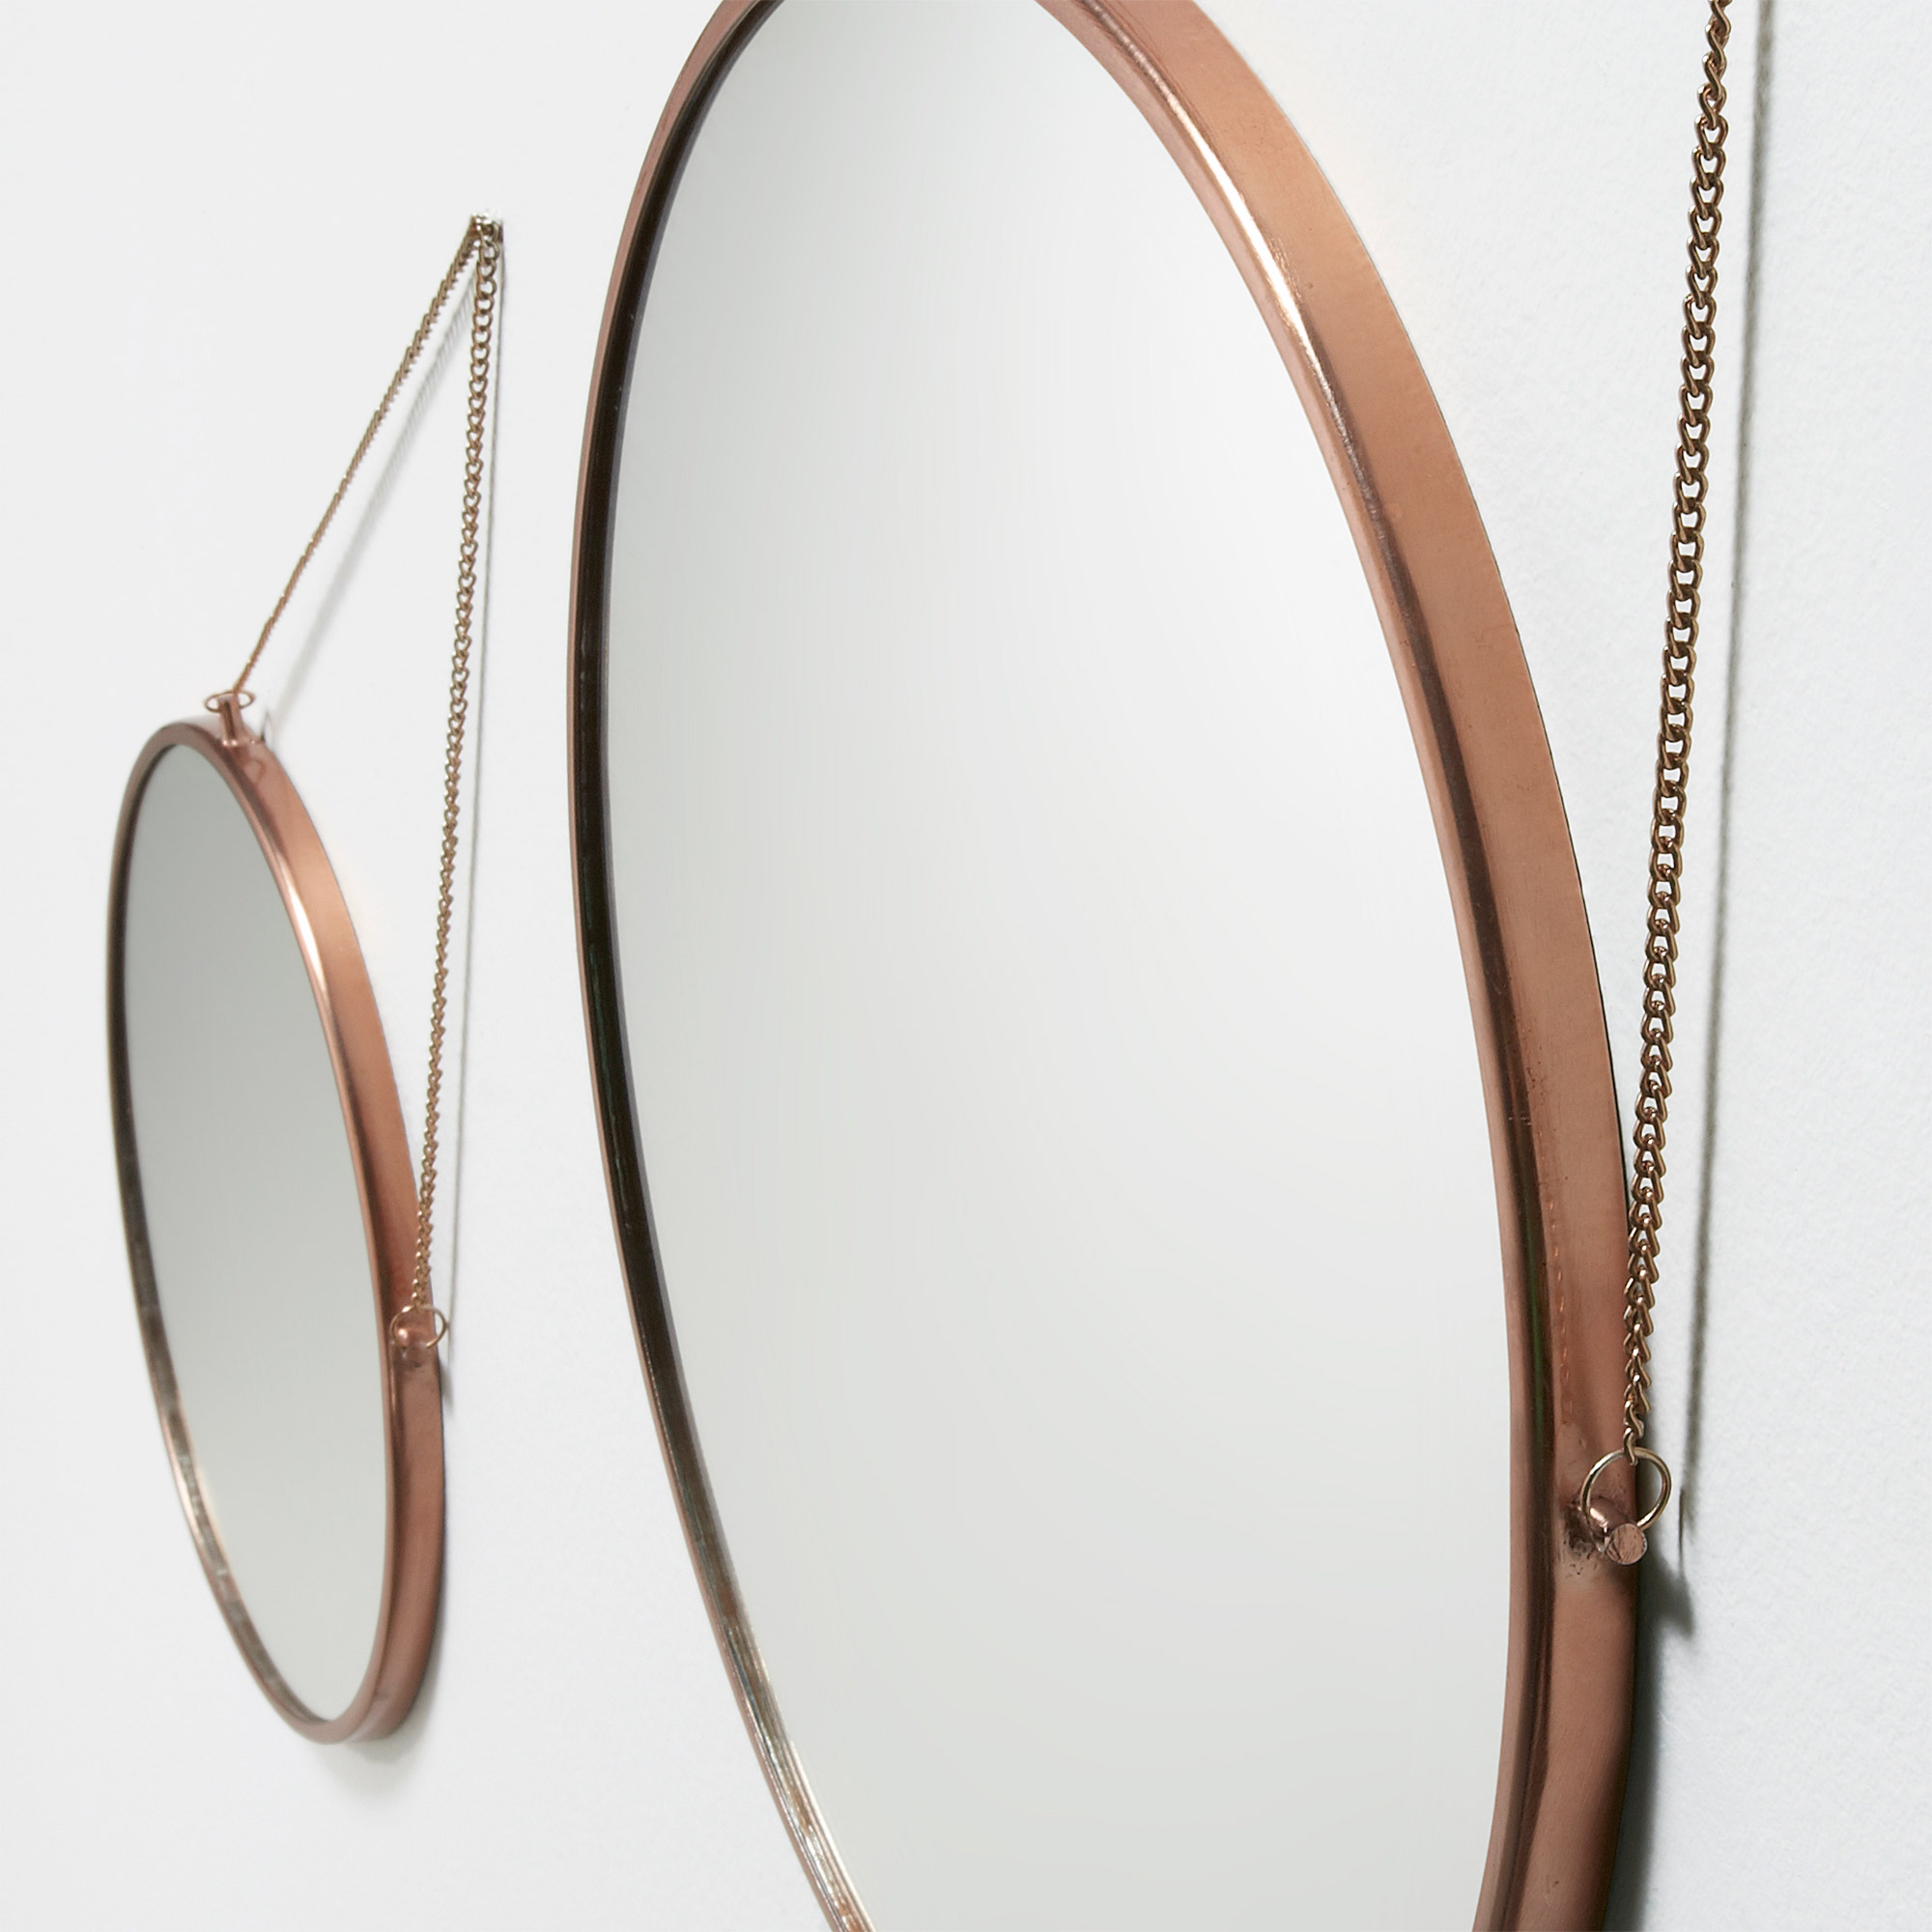 ORACLE MIRRORS - SET oF 2 ONLY $139.00 SHOP NOW WITH AFTERPAY  www.solmarkethome.com.au